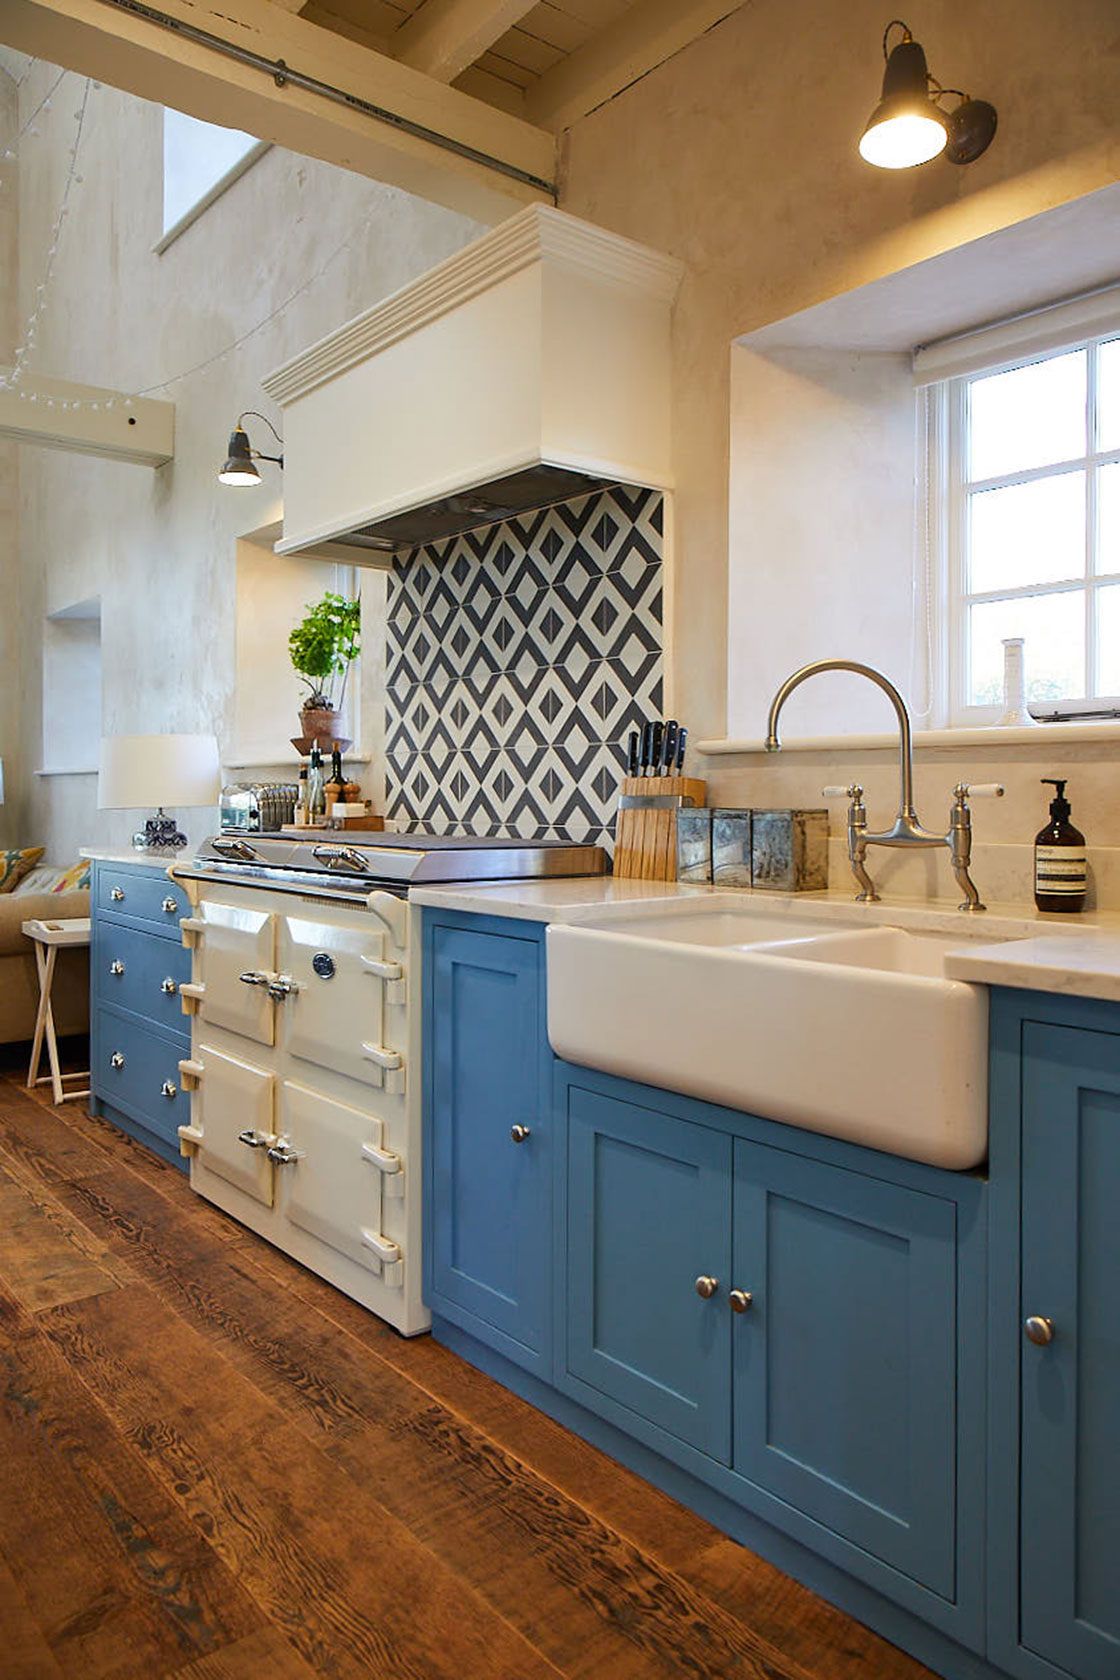 Cream Everhot cooker next to light blue kitchen cabinets and ceramic white double Belfast sink